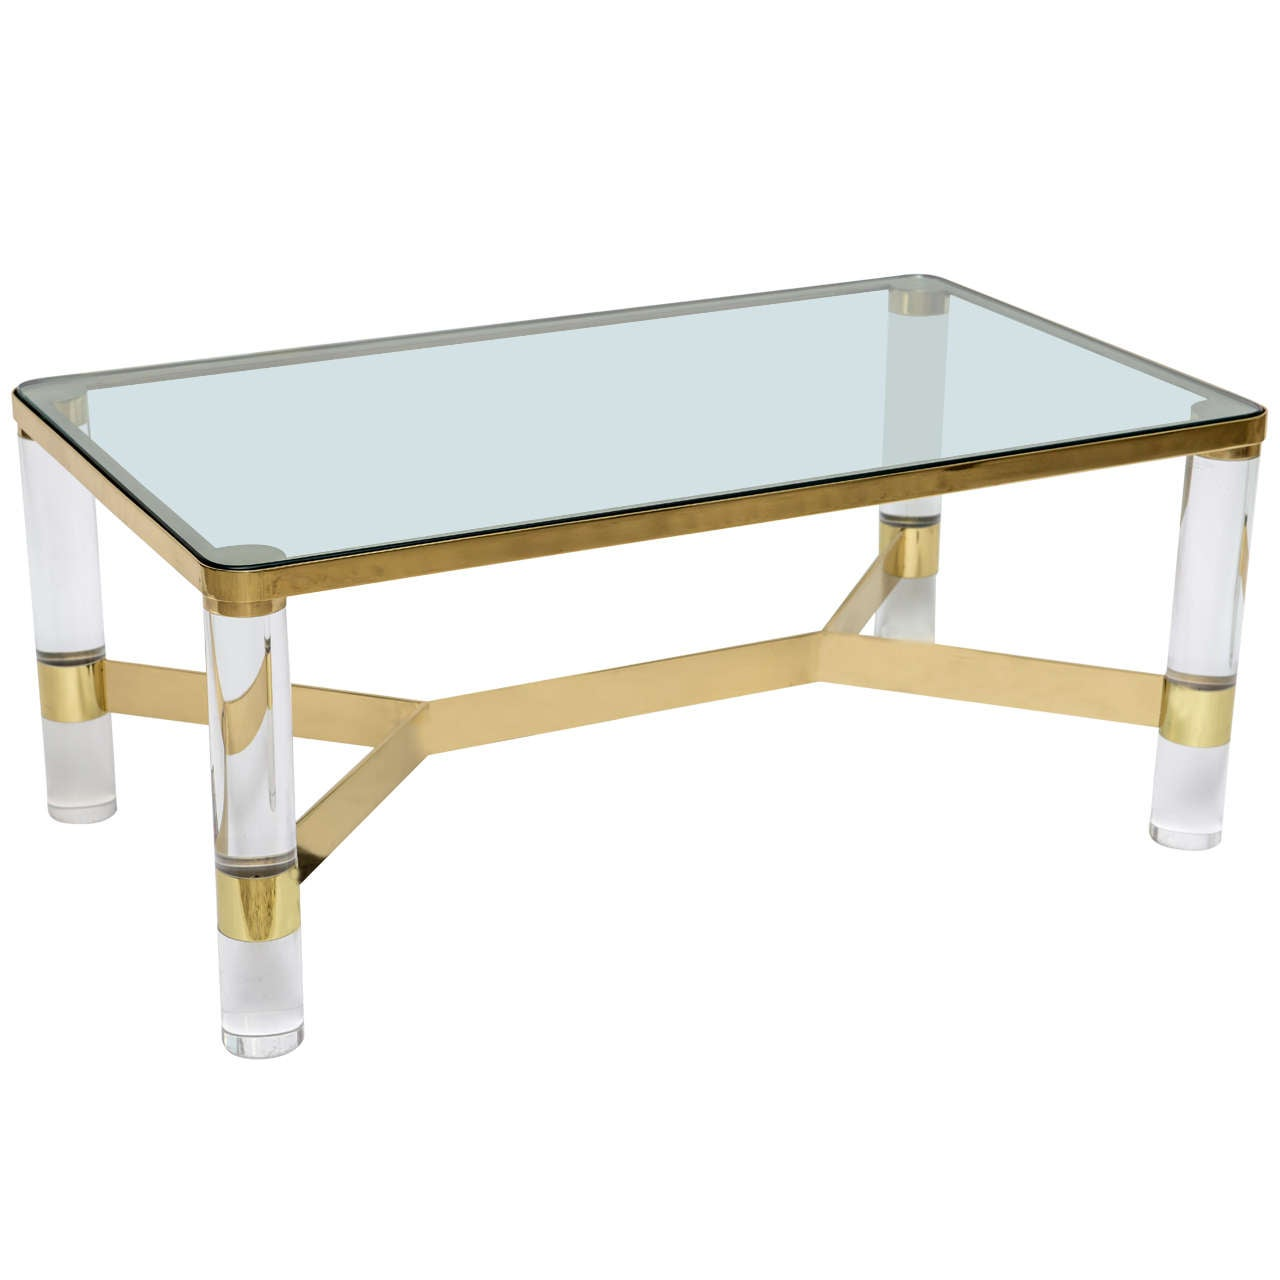 Signed Karl Springer Lucite And Polished Bronze Coffee Table 1